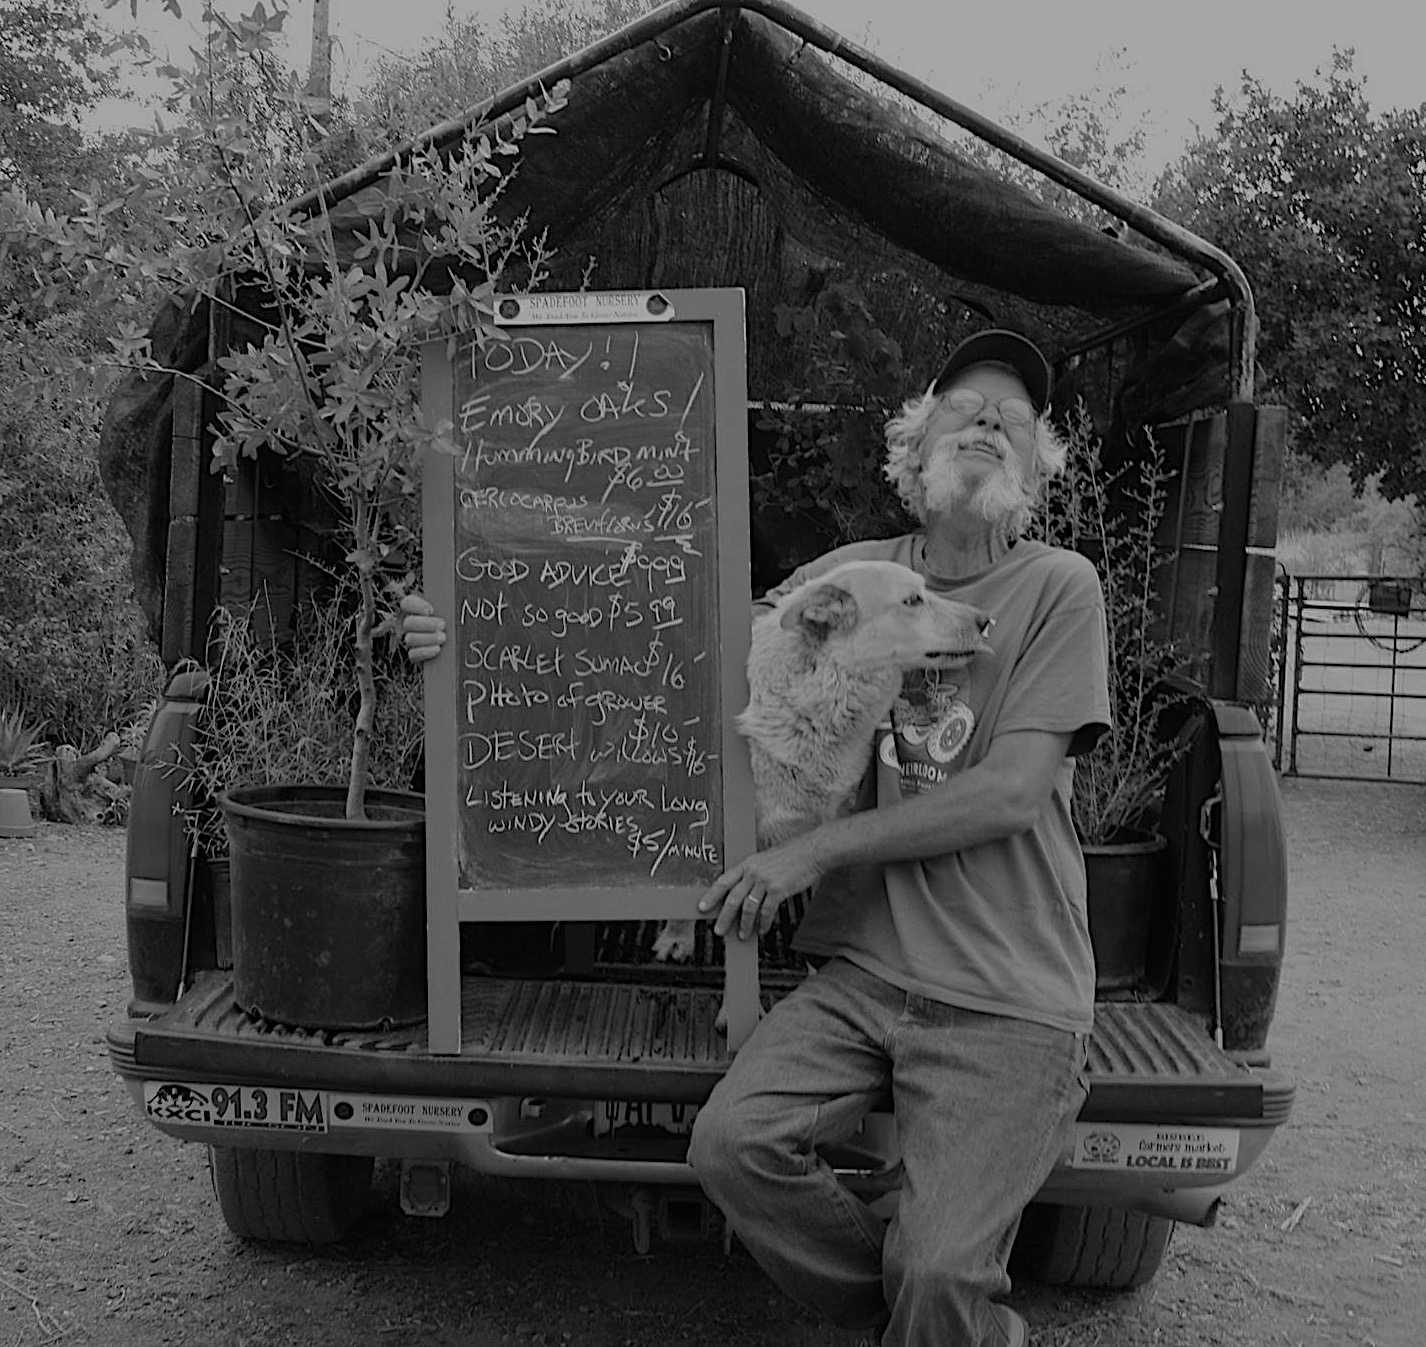 founder and grower. Petey is the manager of the Chihuahuan office (in Cochise County) mostly responsible for propagation, though he can sometimes be found at the Bisbee Farmers' Marketselling plants. - petey mesquitey